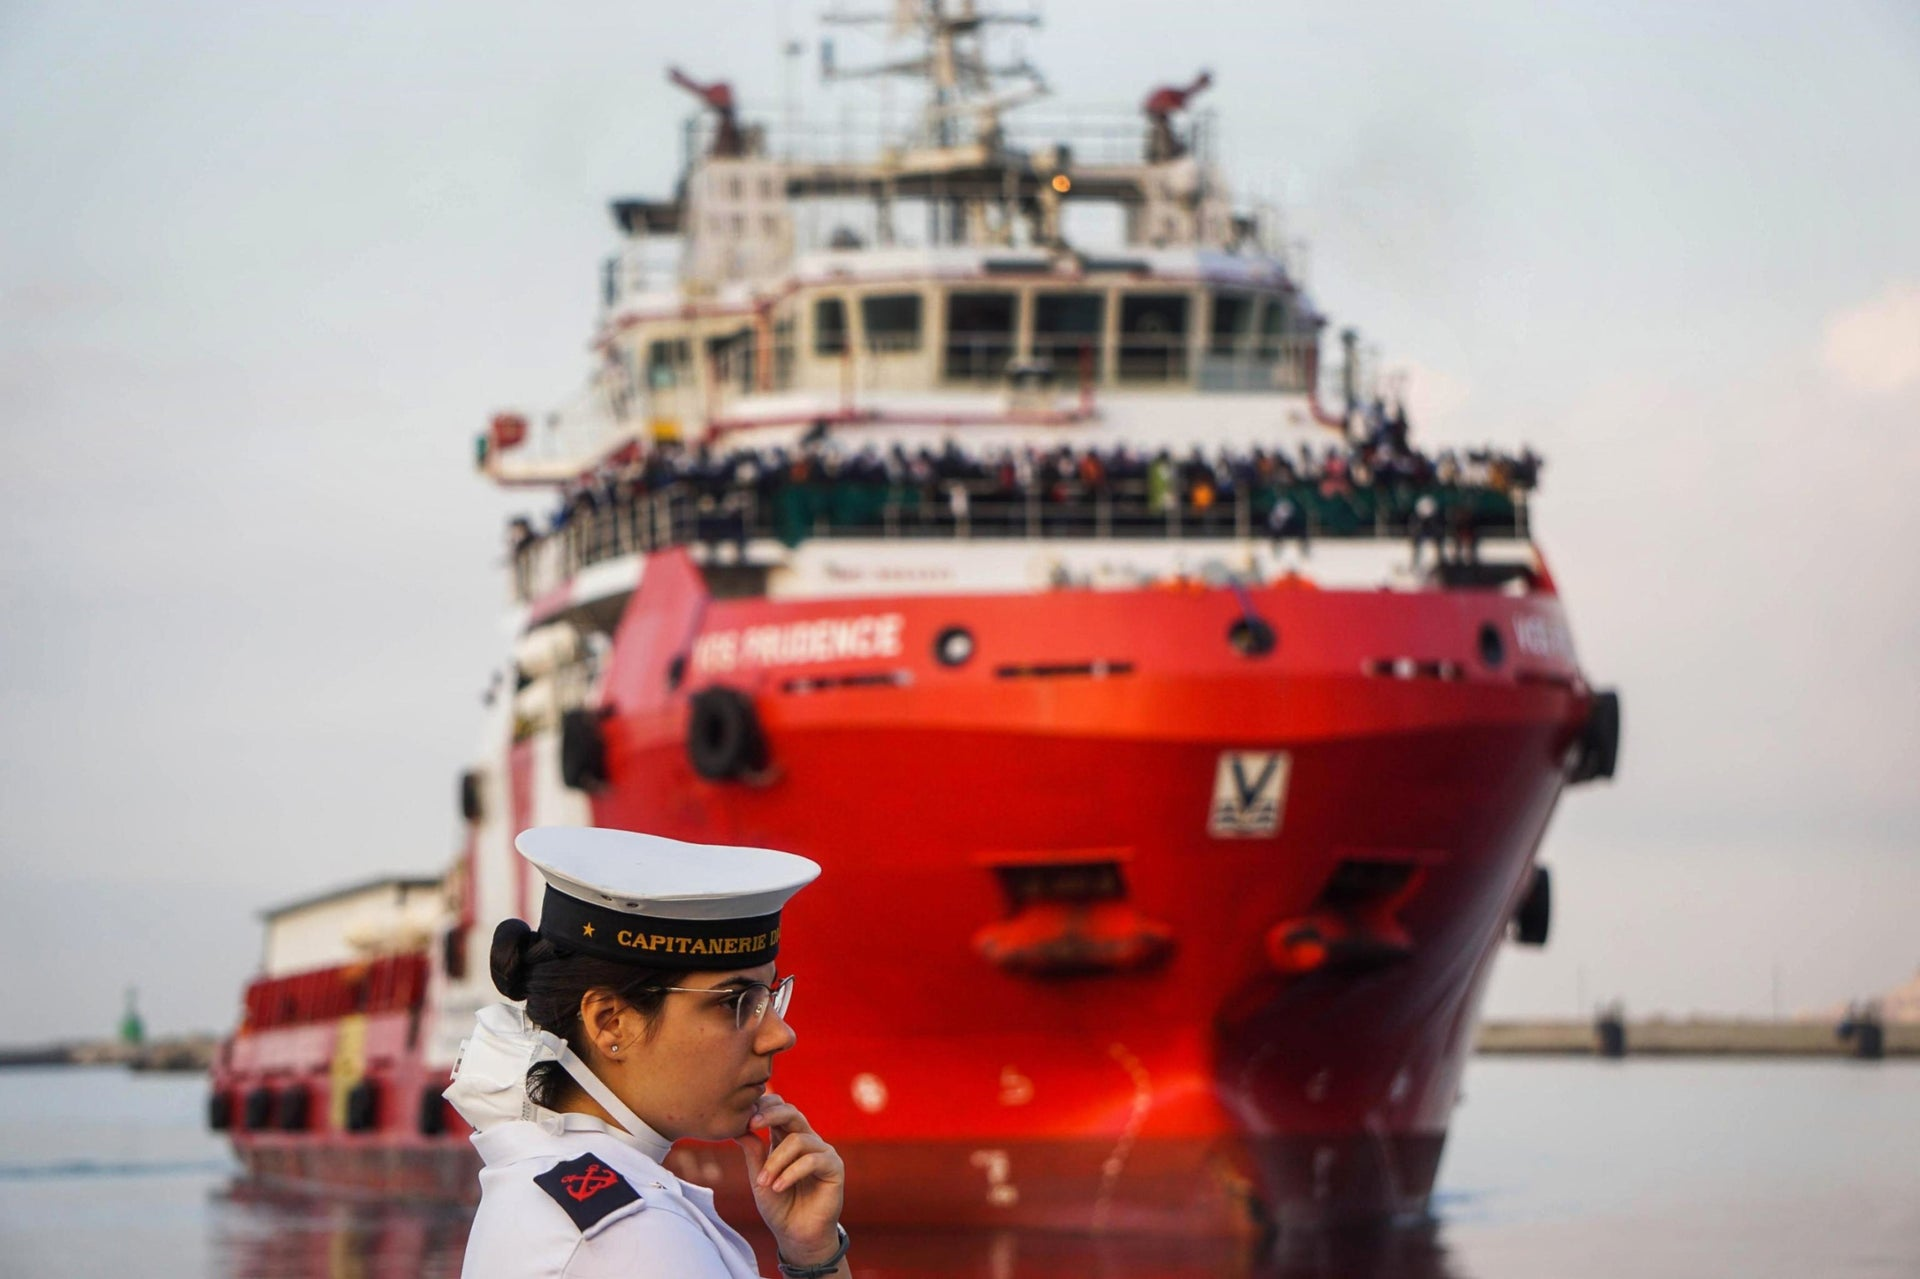 An Italian Coast Guard waiting as the Vos Prudence ship, carrying more than 900 migrants rescued at sea, comes in to dock at Salerno's harbor, Italy.